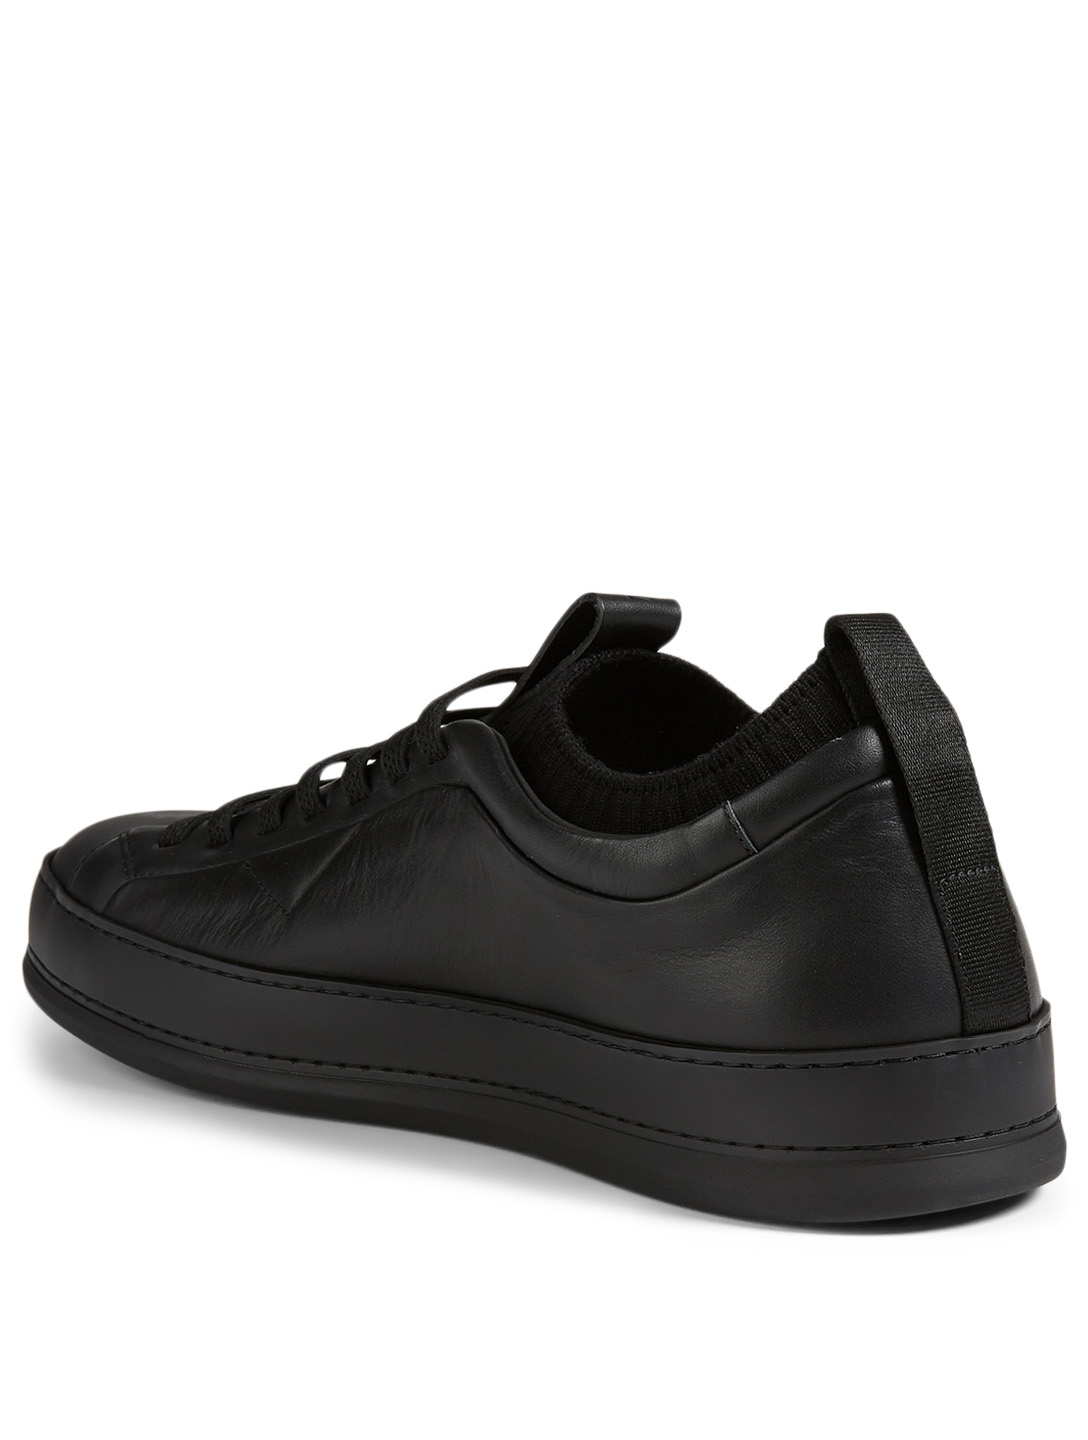 ERMENEGILDO ZEGNA Imperia Leather Sneakers Men's Black